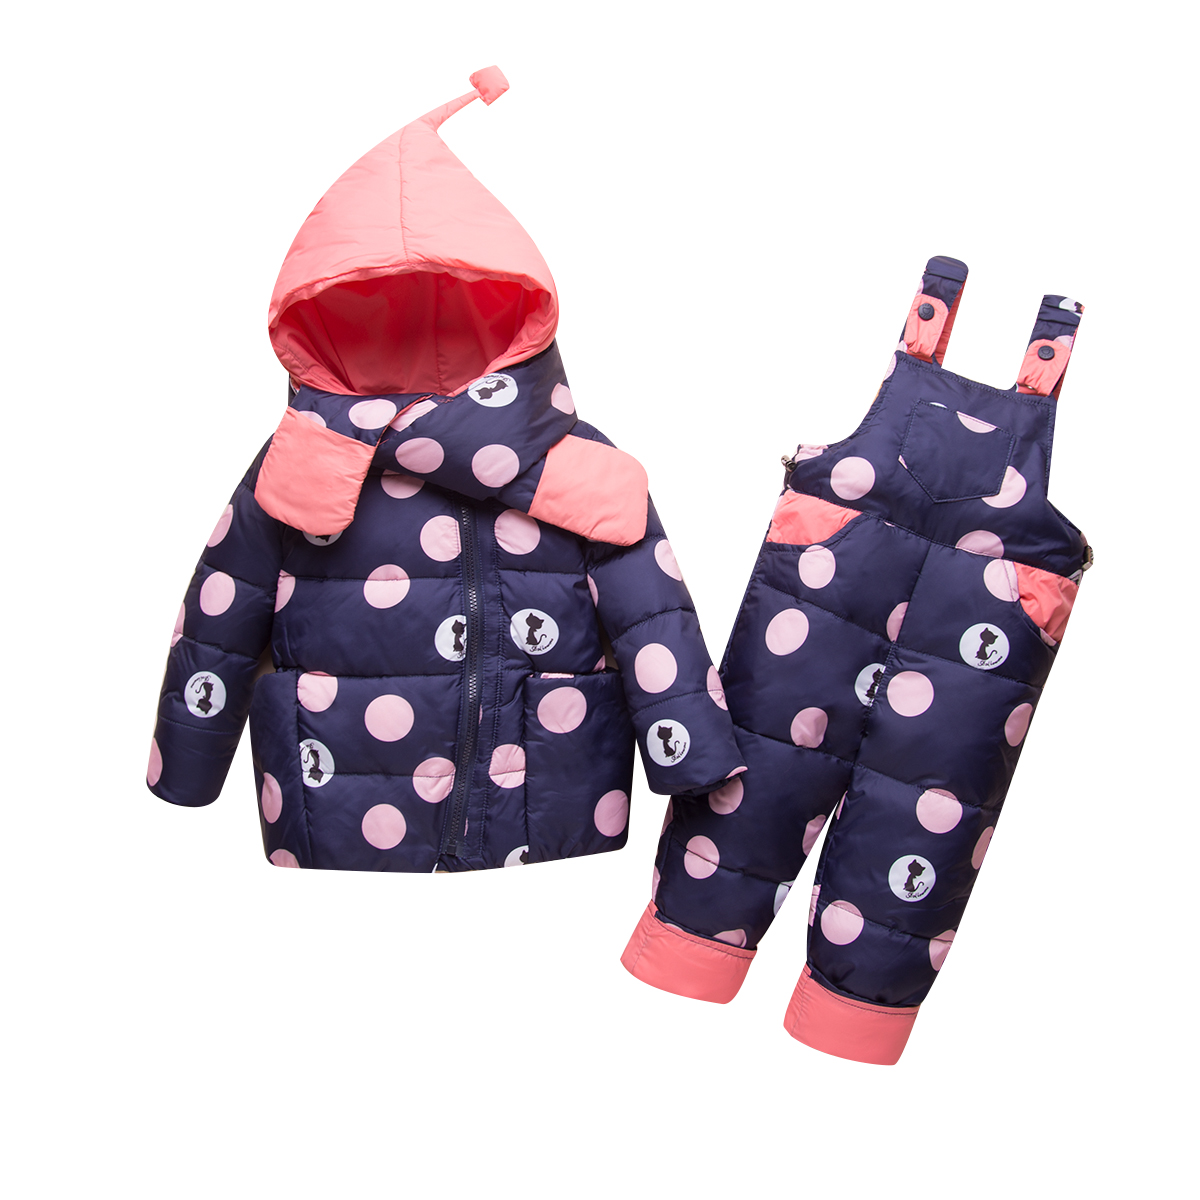 купить Dollplus 2018 Winter Sets Children Clothing Sets Warm Duck Down Jackets Set Baby Down Sports Suit for Girls Kids Suits недорого